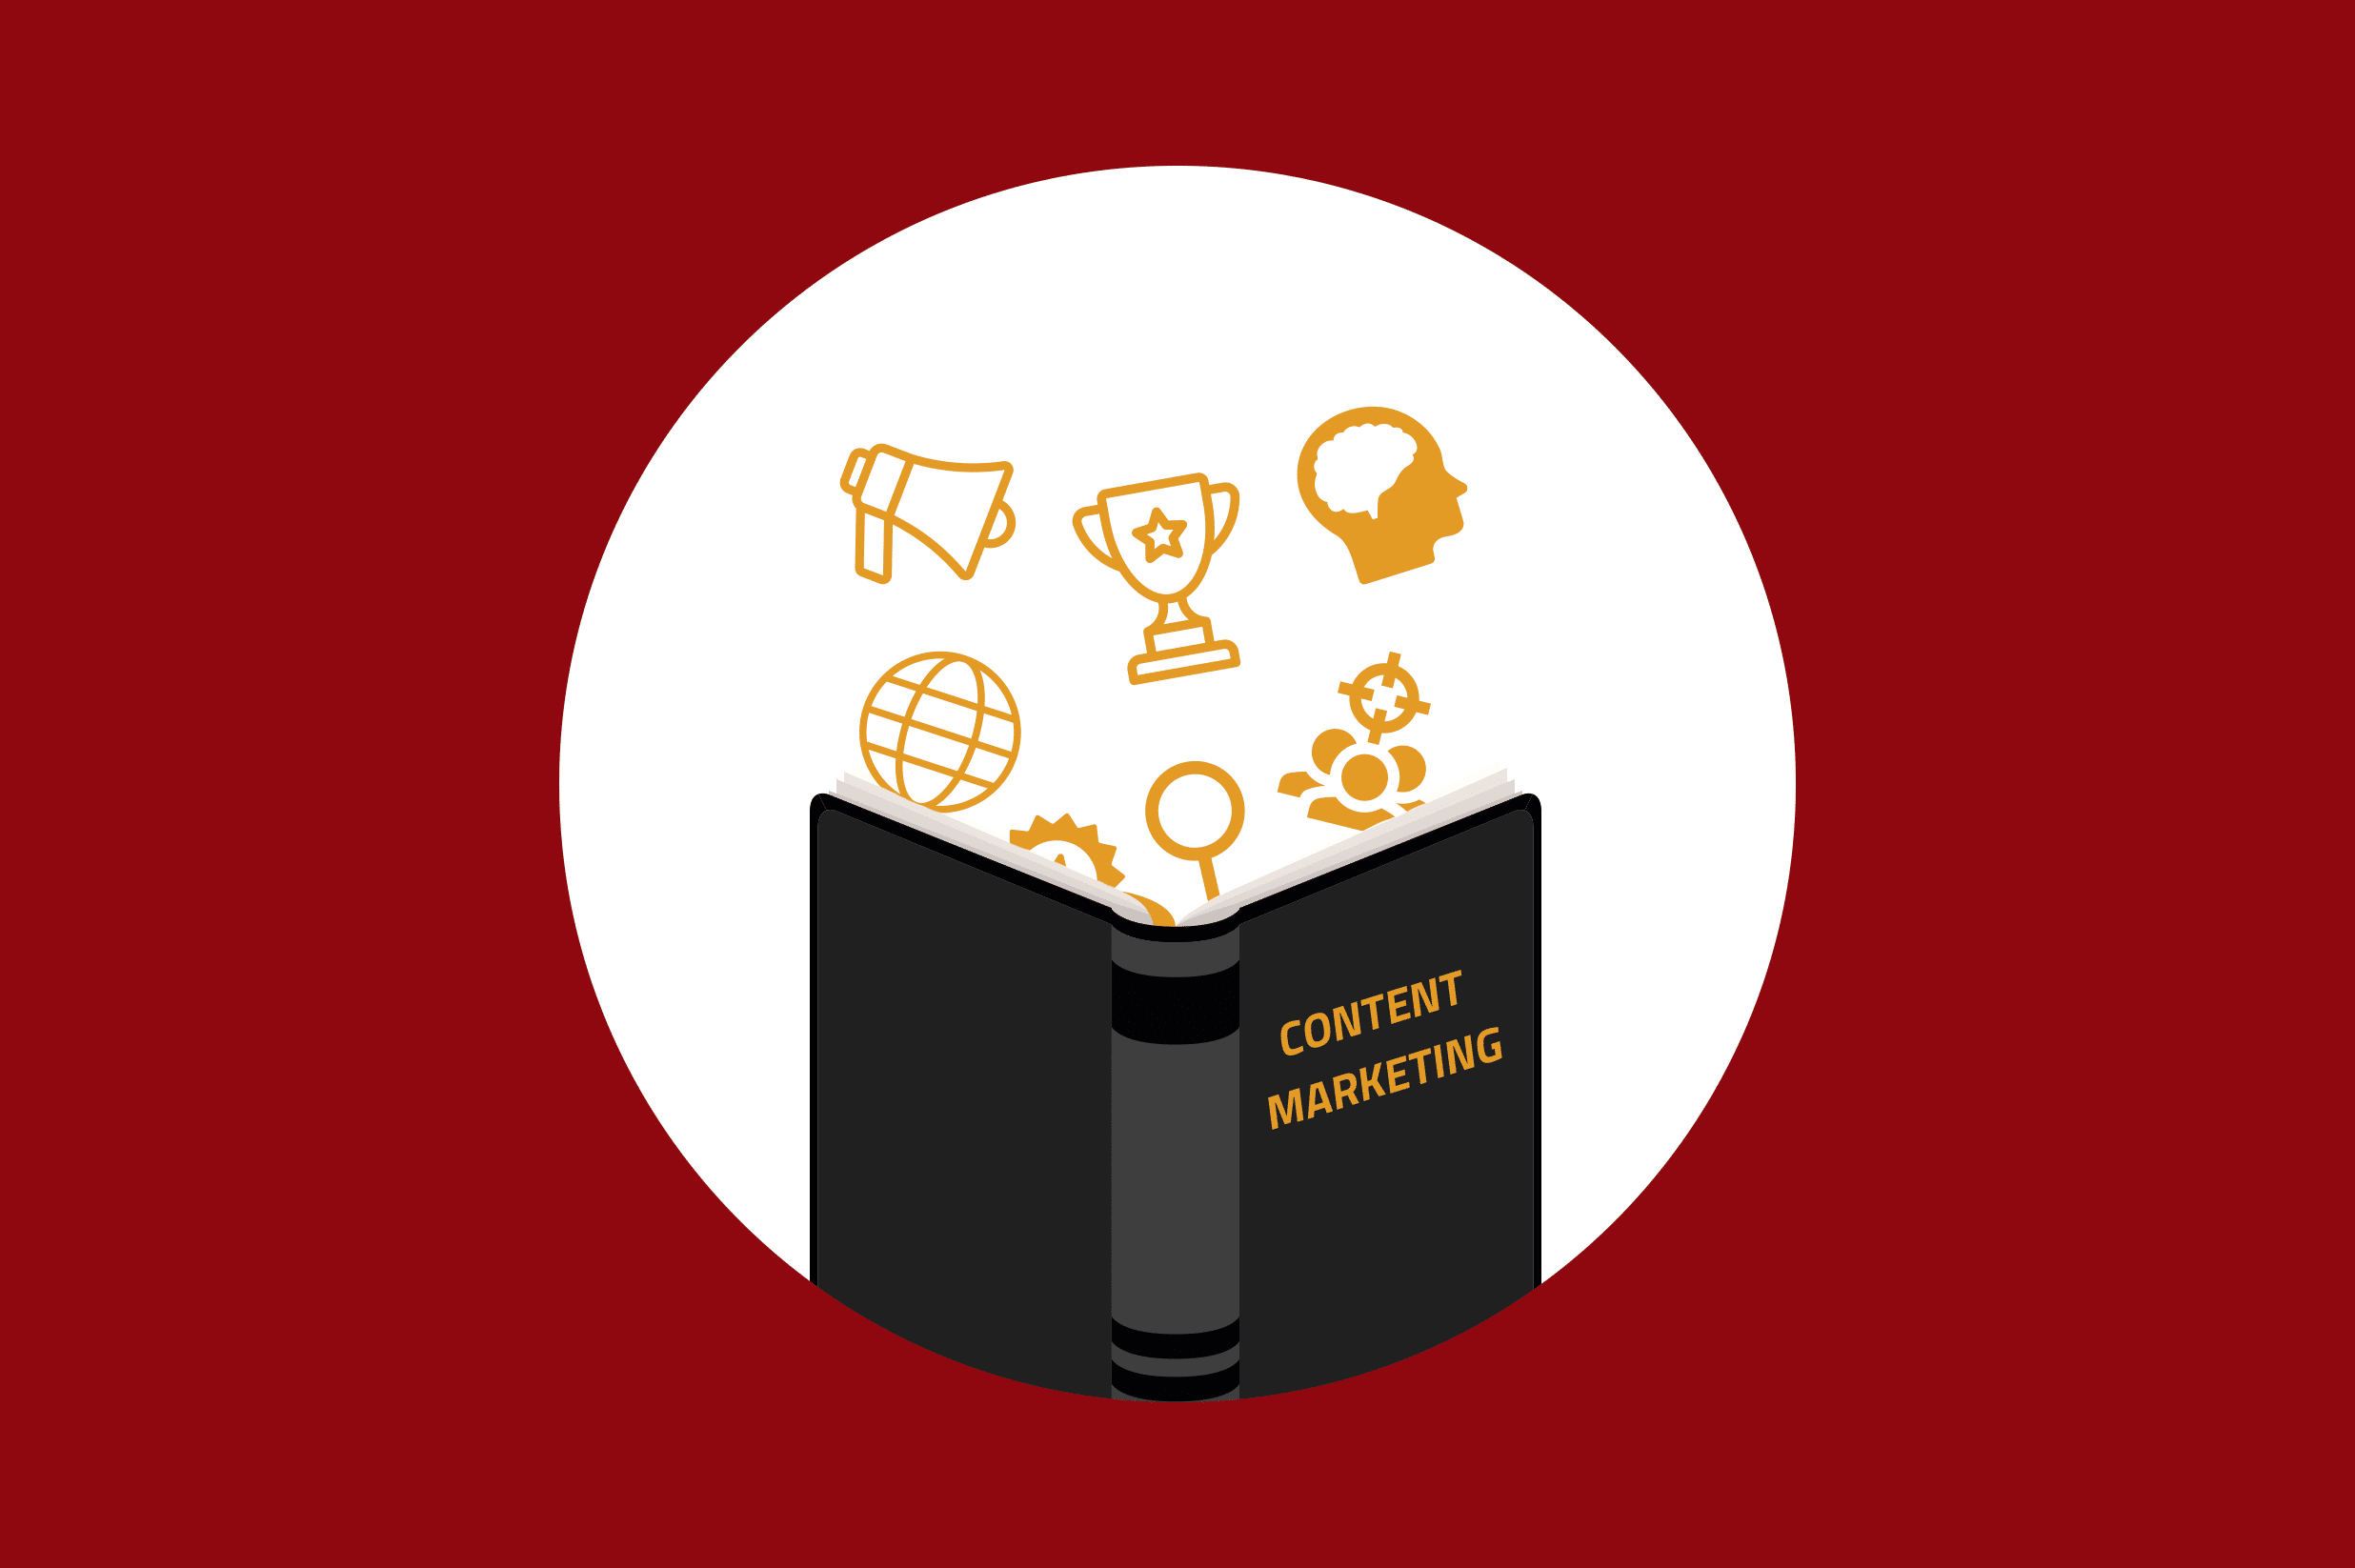 content-marketing-biblens-10-bud-1